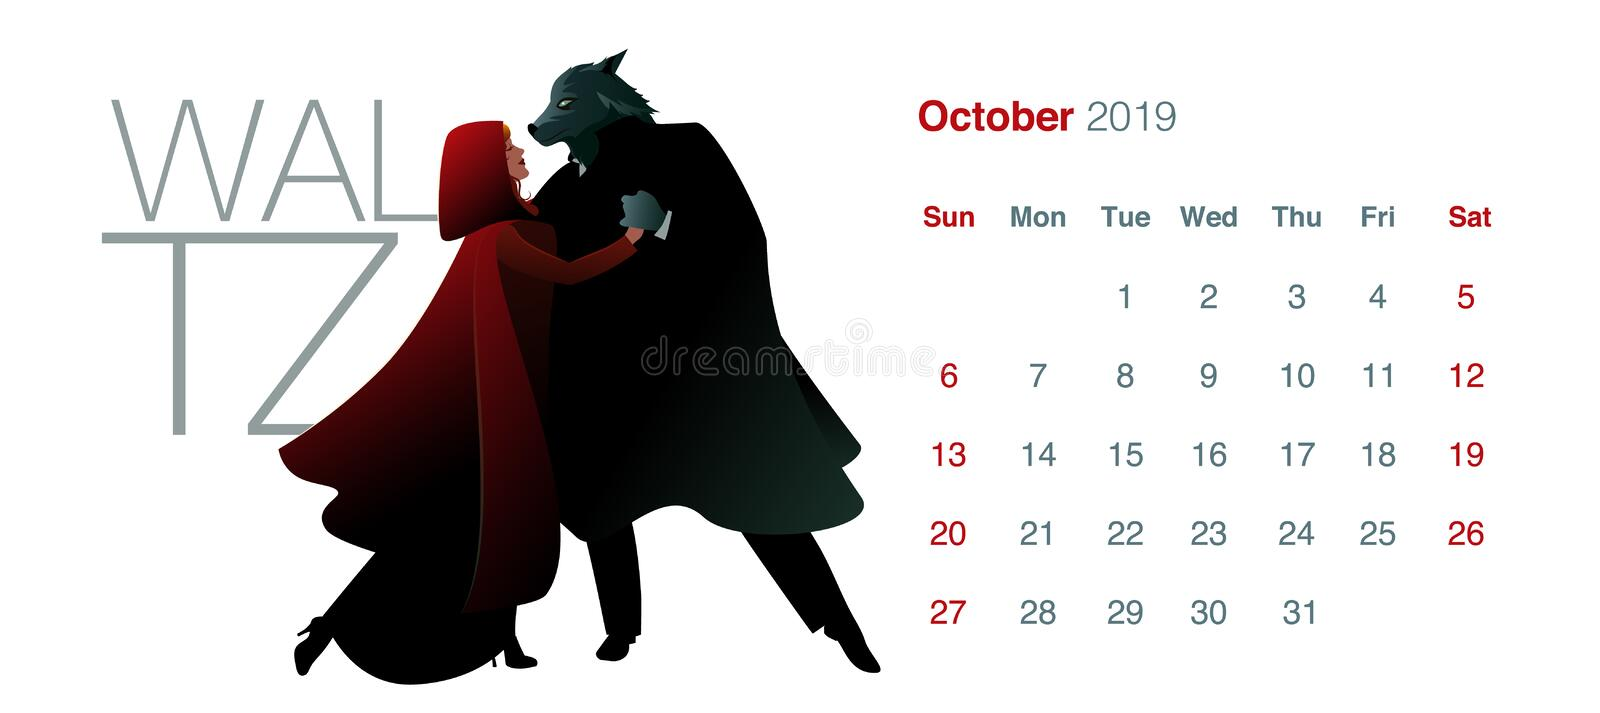 2019 Dance Calendar. October. Little red riding hood and the wolf dancing waltz stock illustration